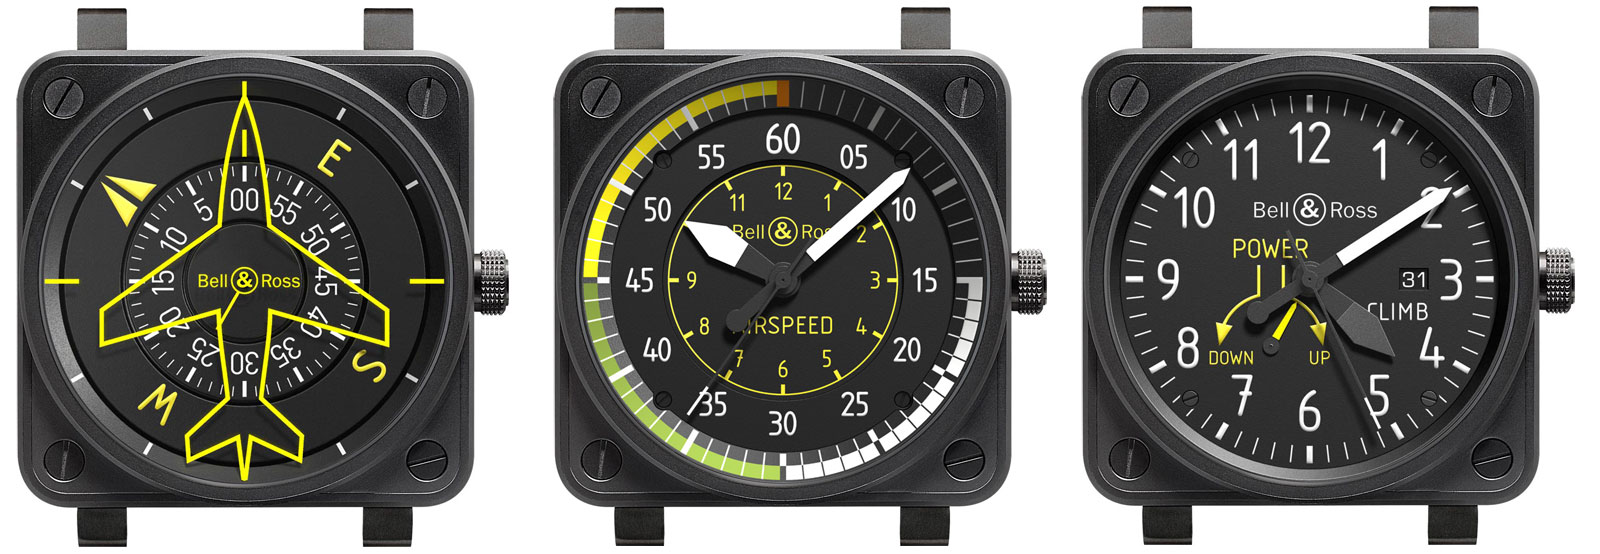 Bell&Ross Instrument Flight Rules collection